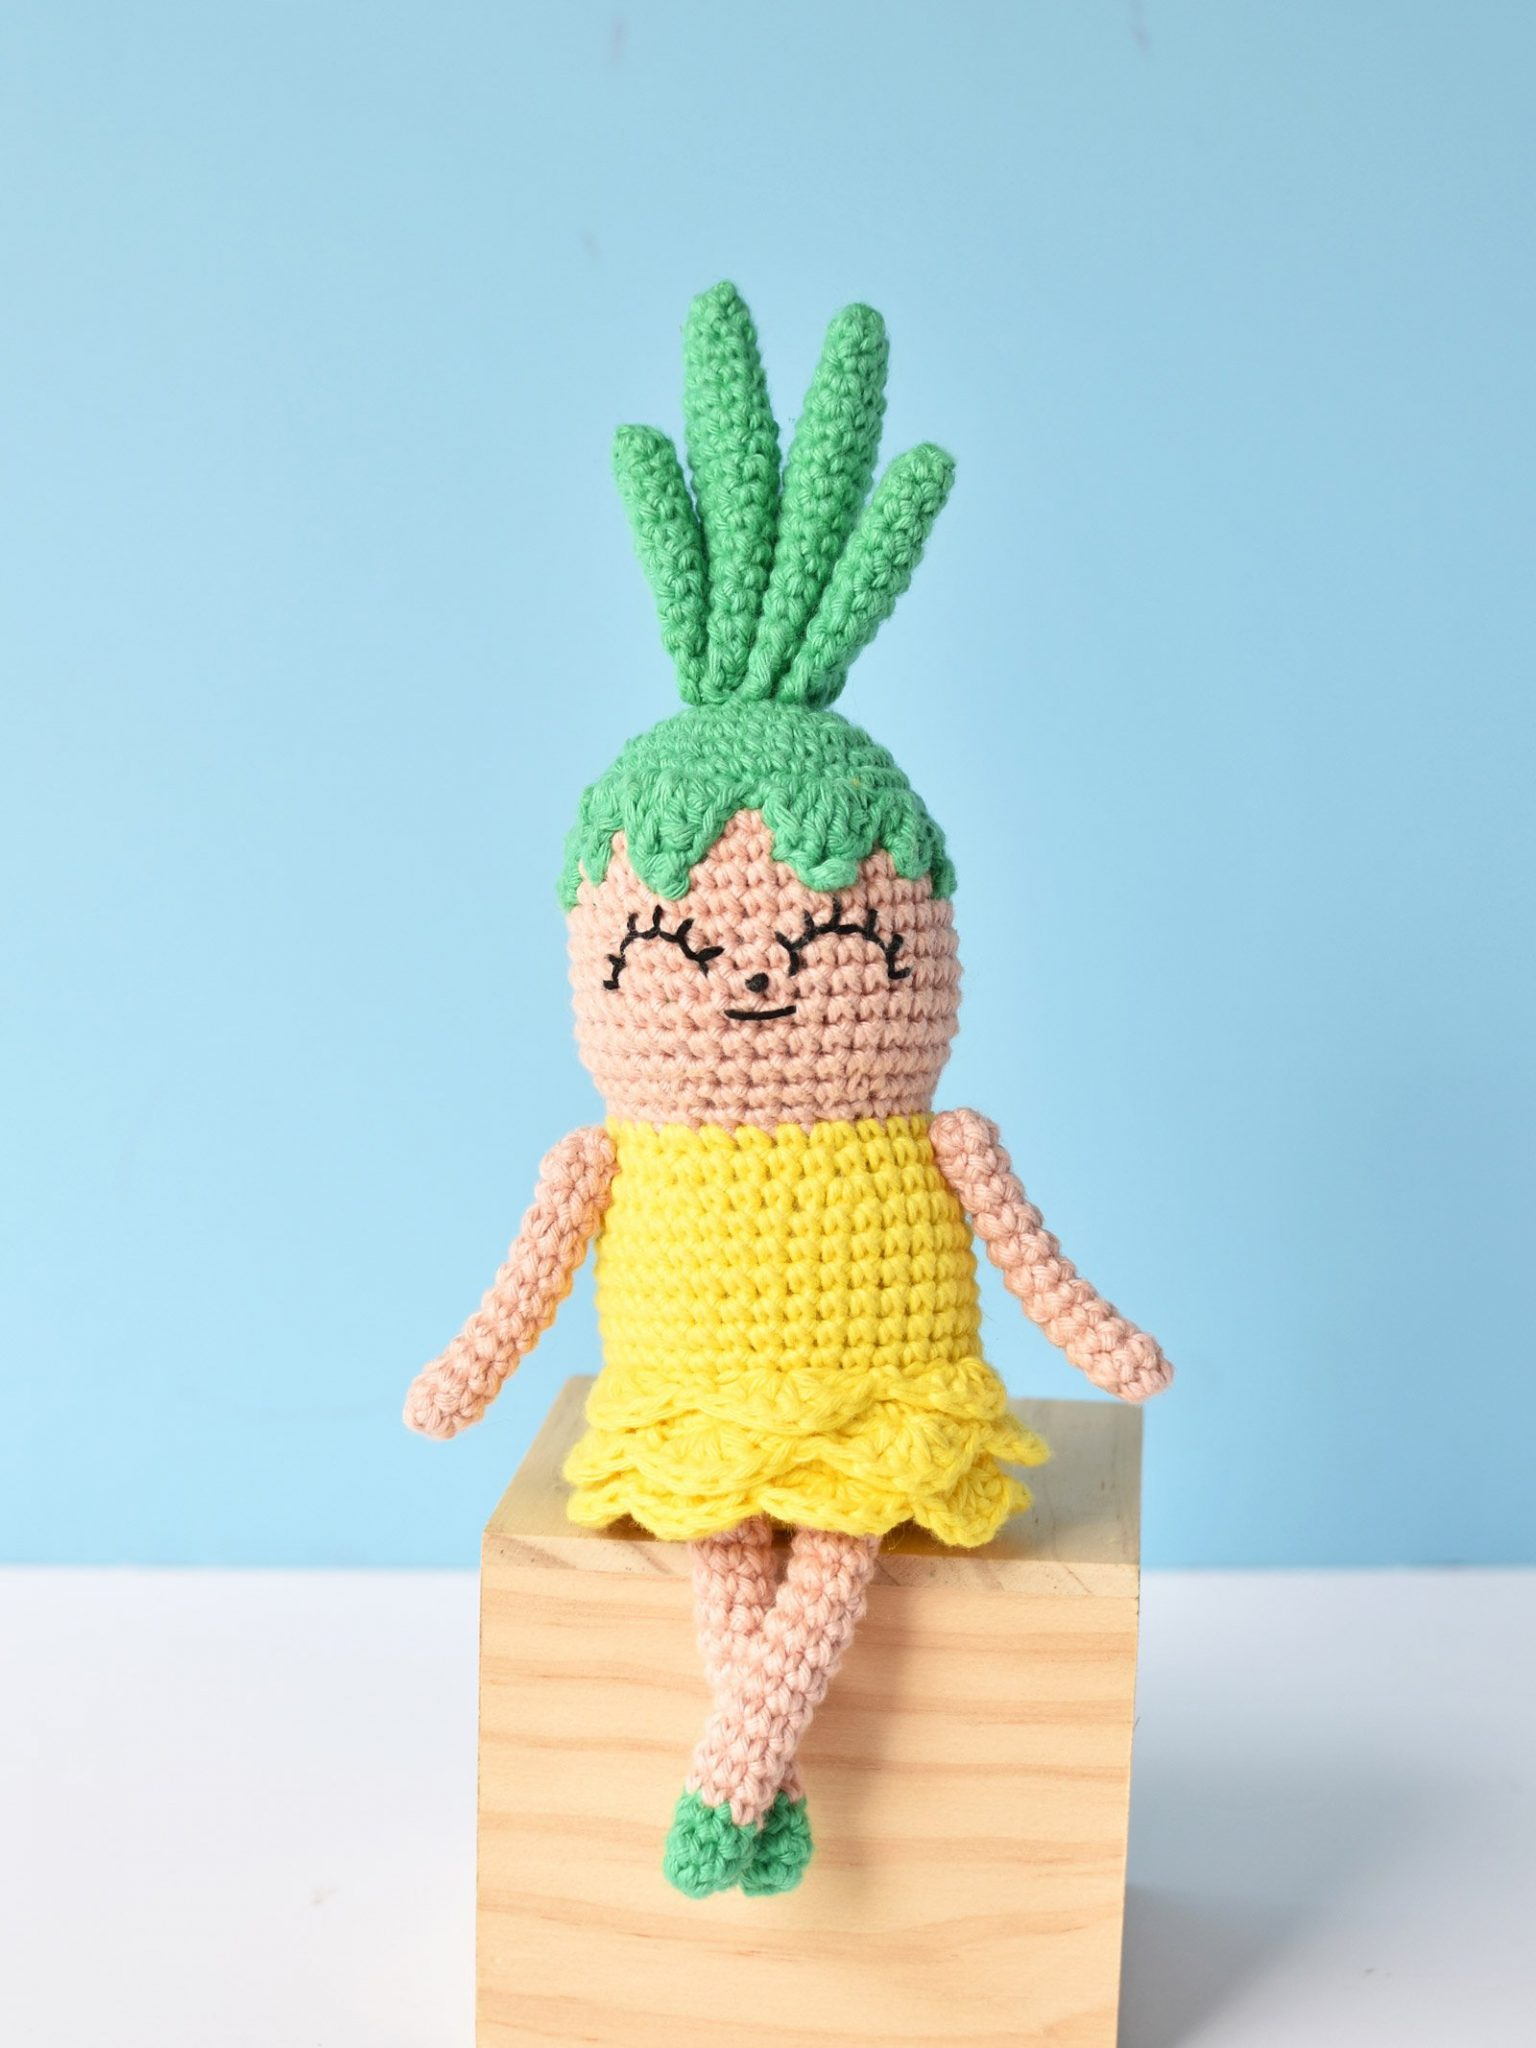 Crochet Pineapple amigurumi sitting on a wooden block in front of a blue background.